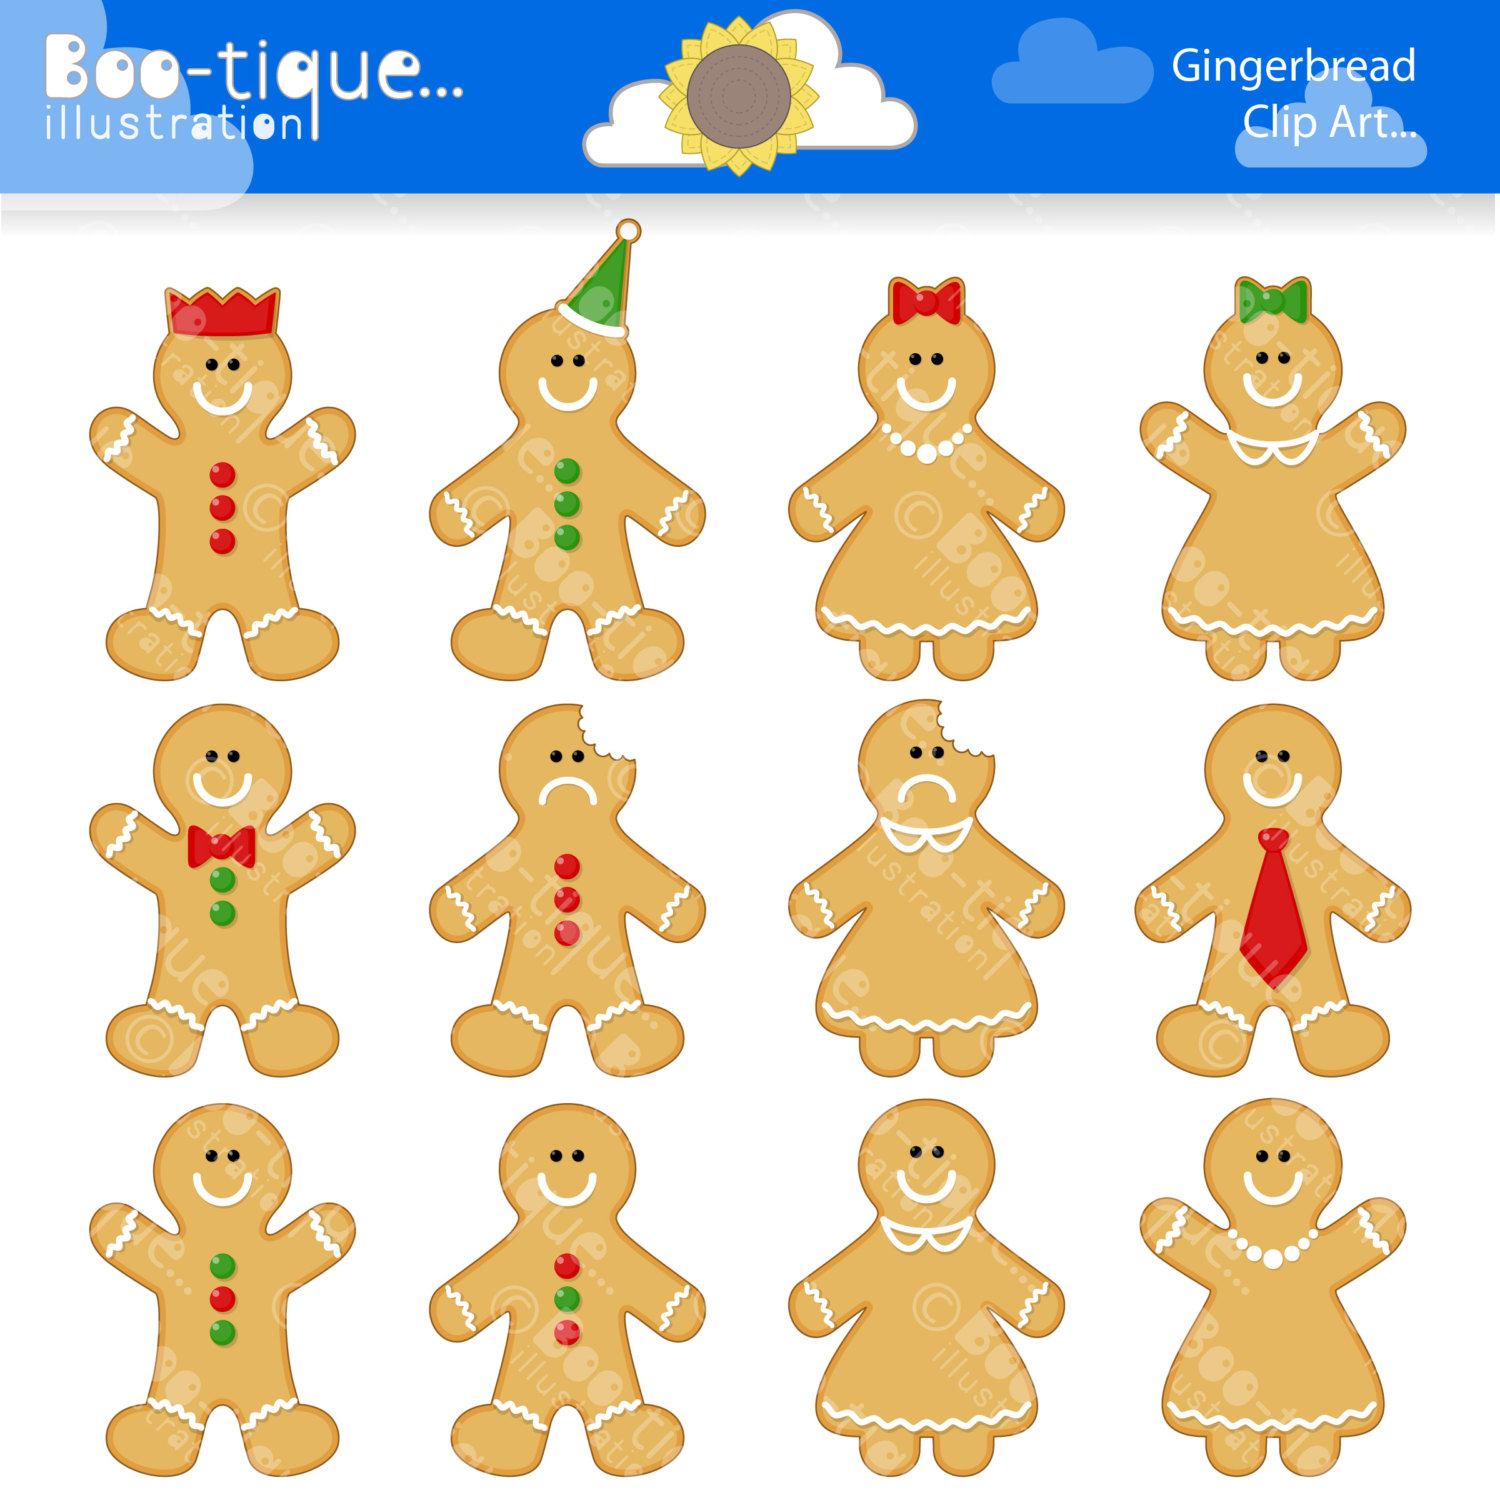 Gingerbread Man Digital Clipart For By Bootiqueillustration